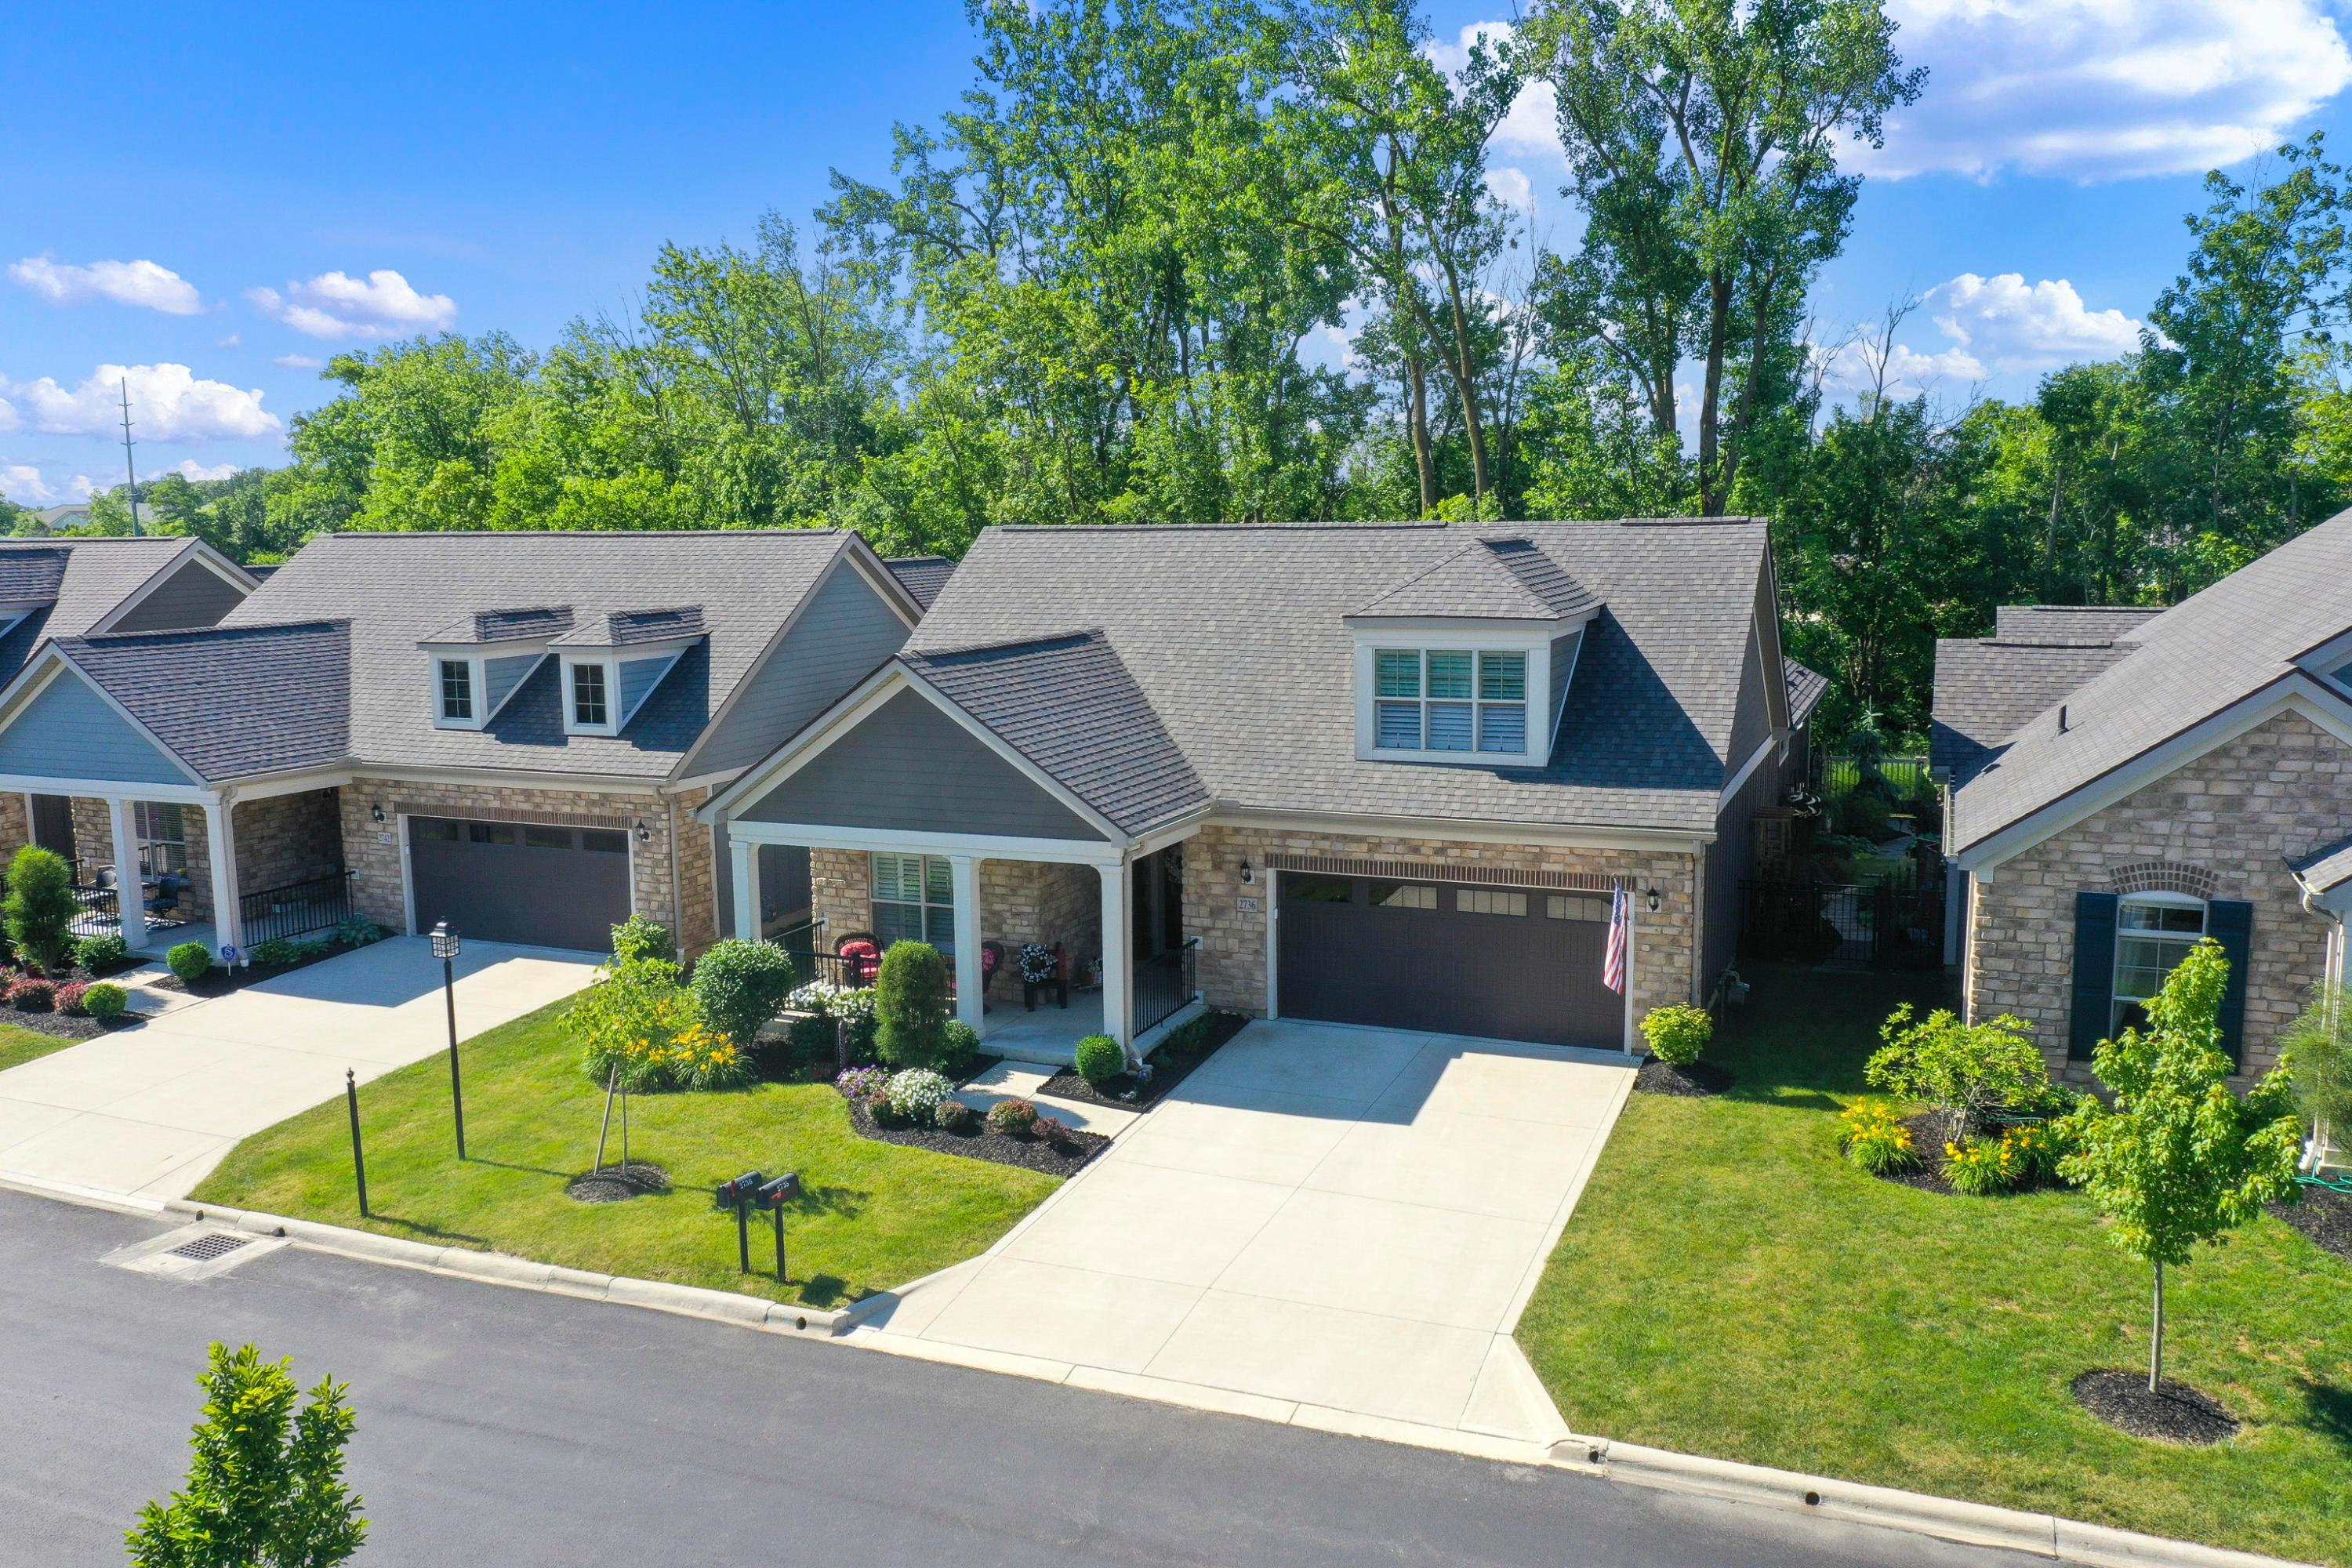 Photo of 2736 Gardenview Loop Drive, Grove City, OH 43123